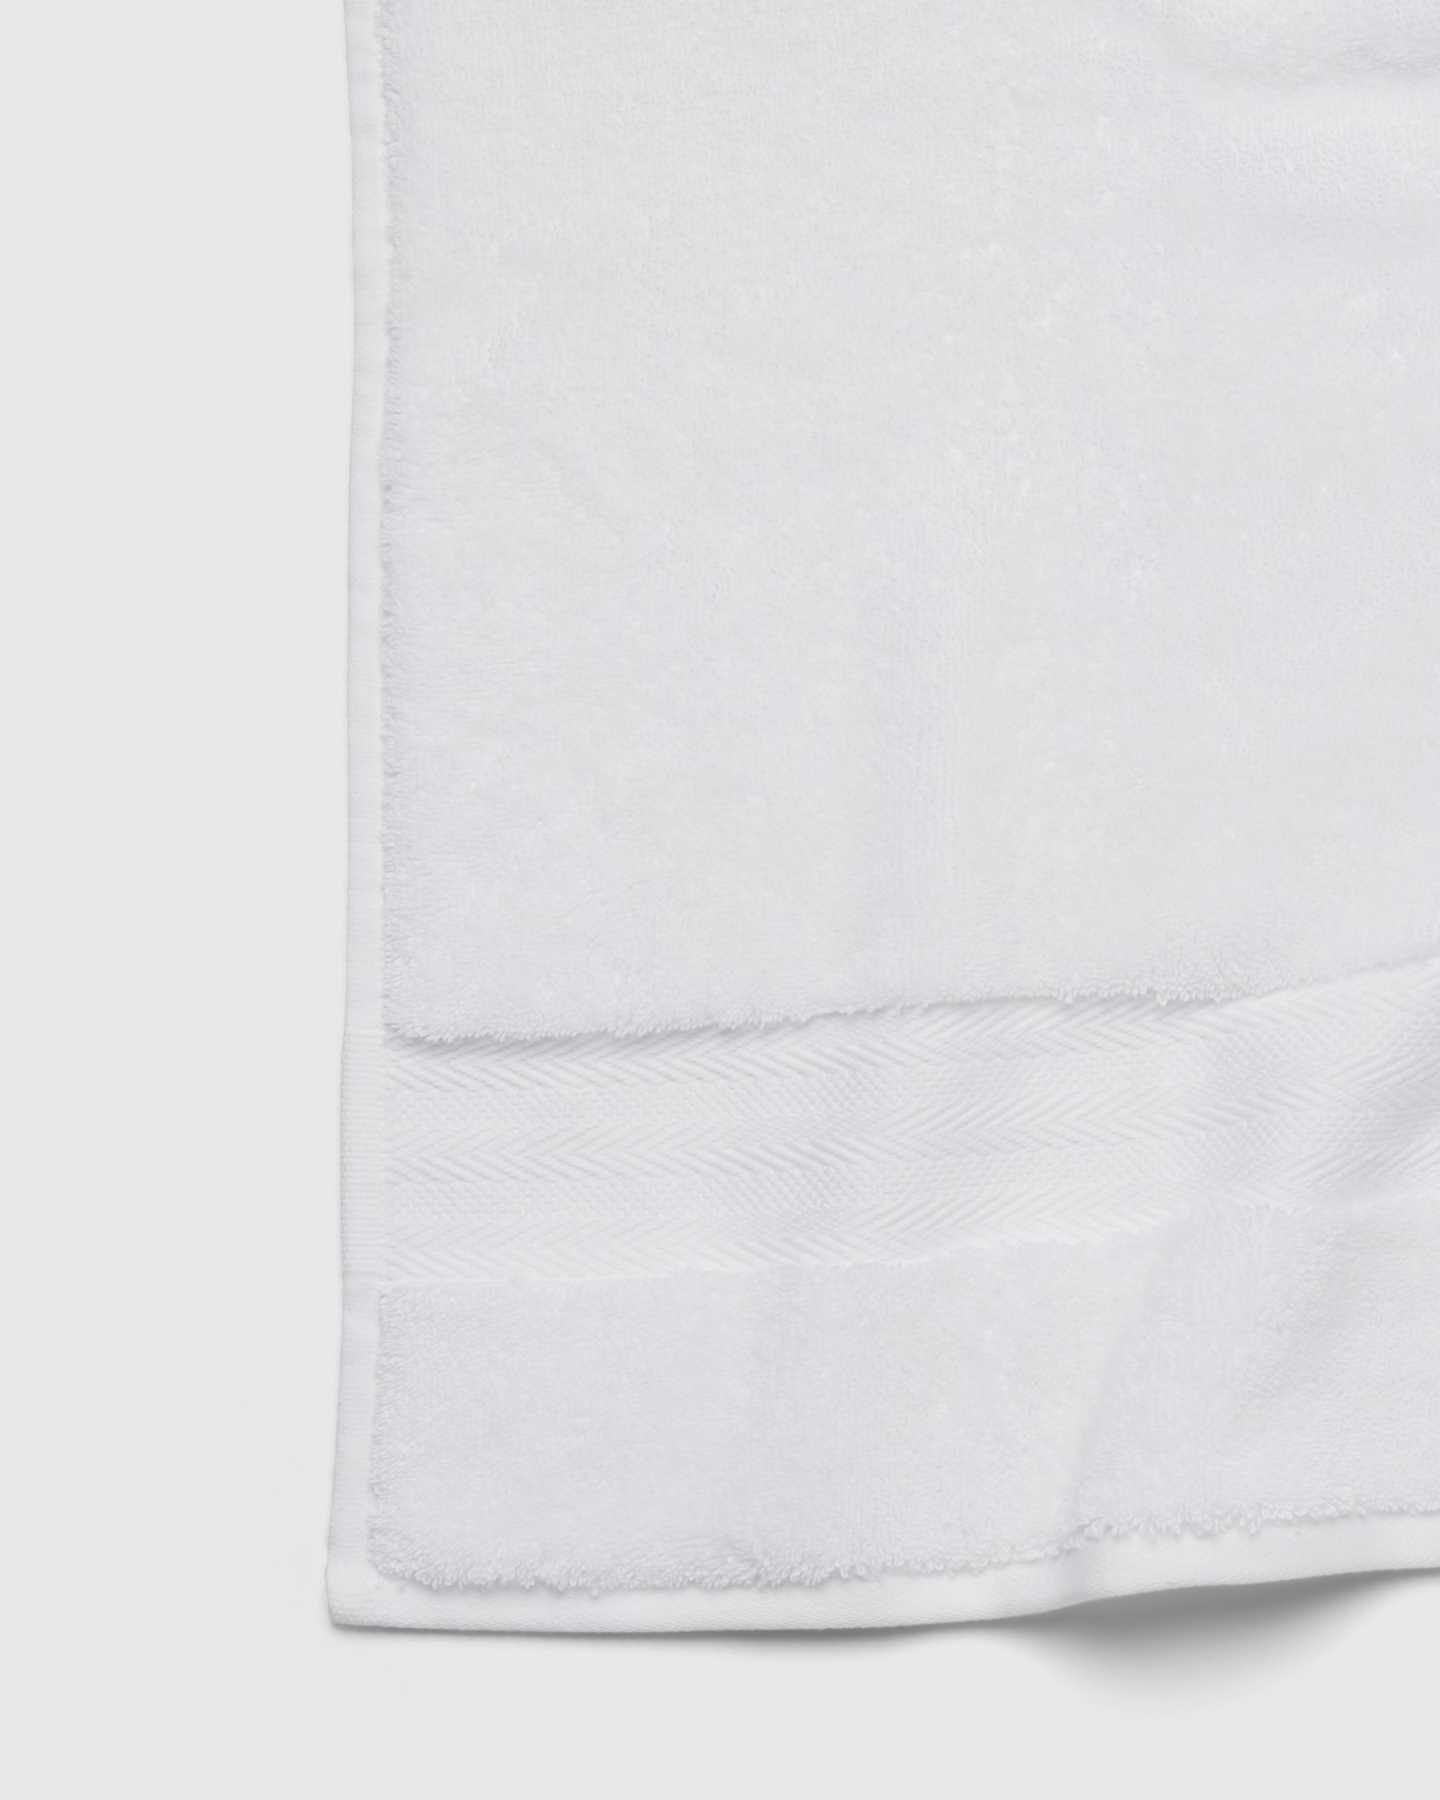 Organic Turkish Spa Bath Towels (Set of 2) - White - 5